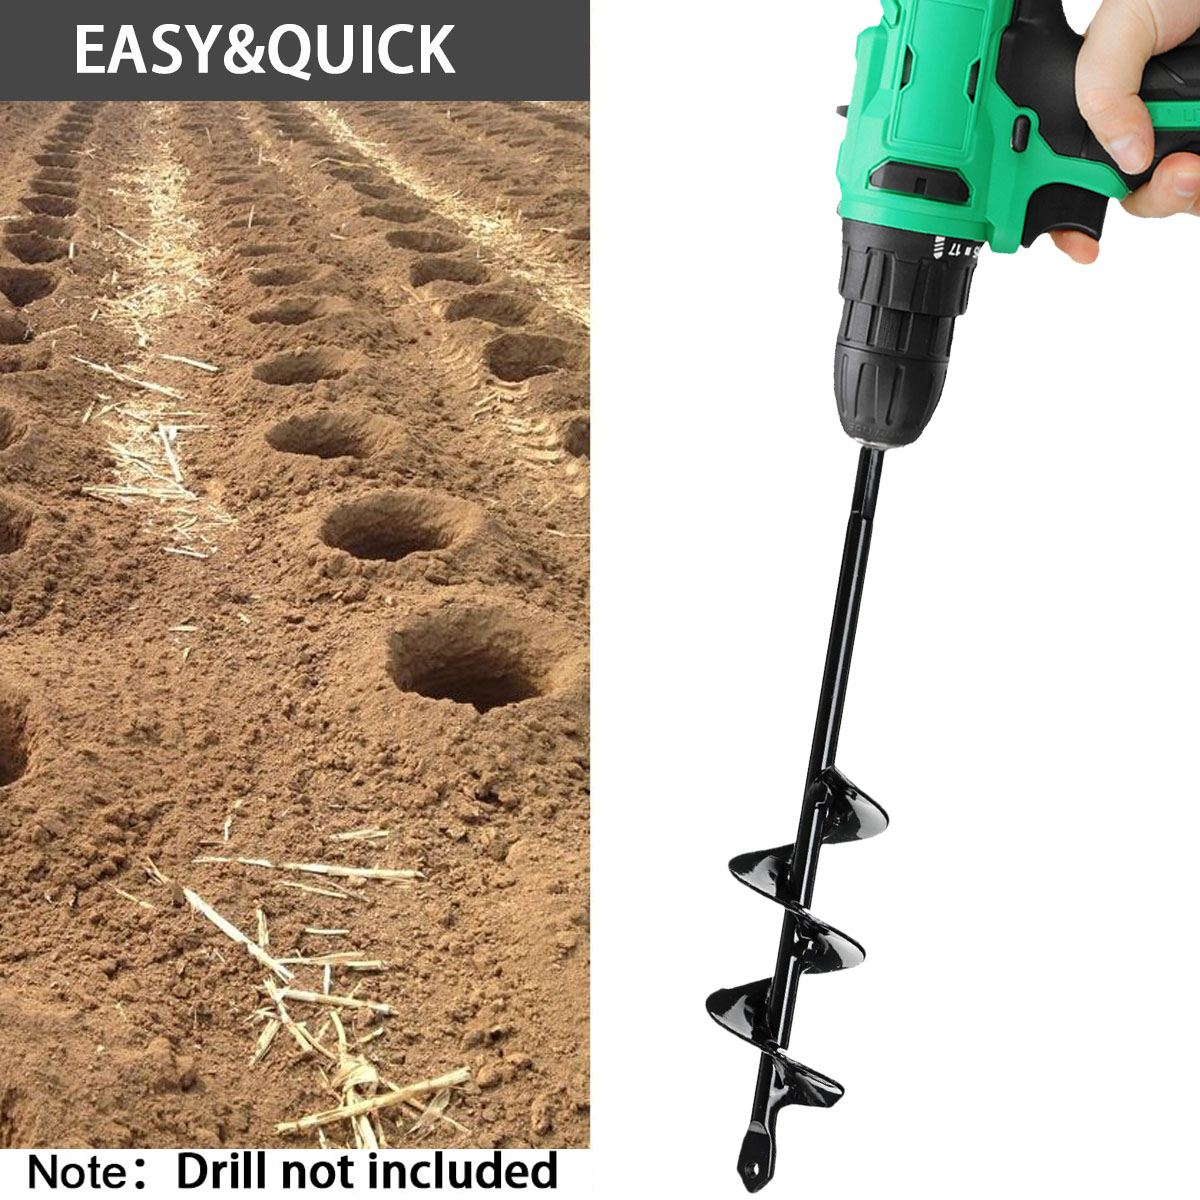 Garden Auger Drill Bit Spiral Hole Digger Tool 50mm Flower Planter Bulb HEX Shaft Drill Yard Garden Hole Digger Tool 22/45cm